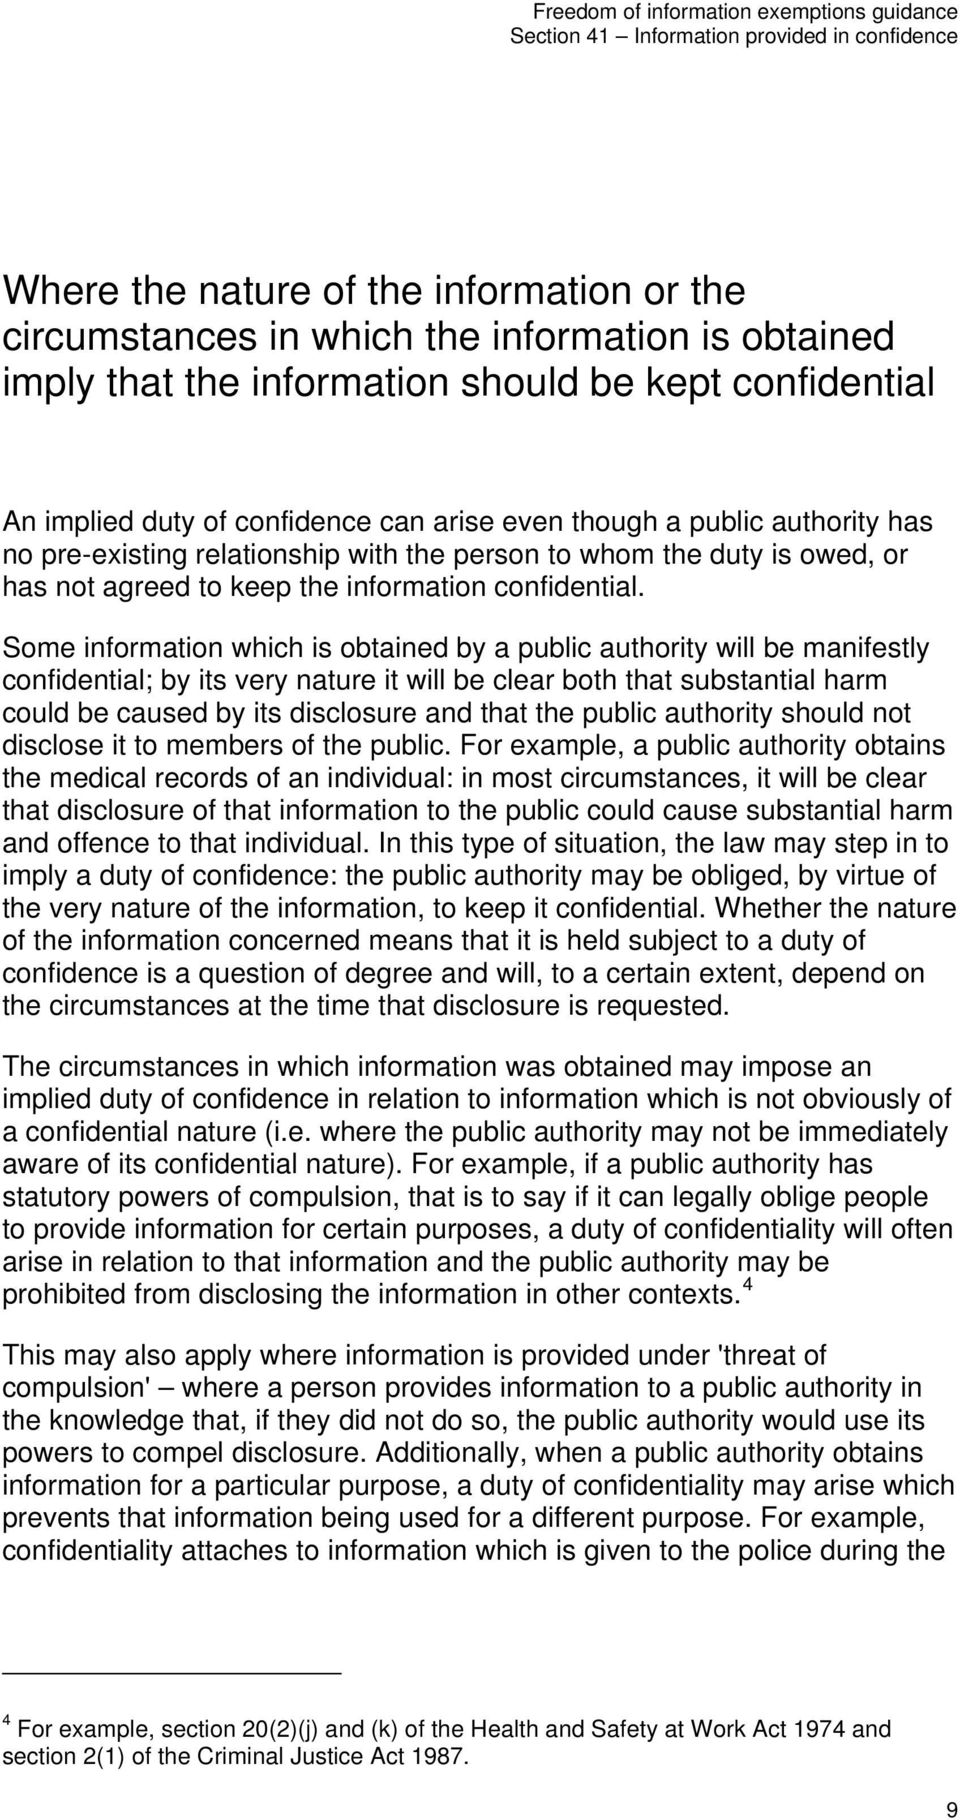 Some information which is obtained by a public authority will be manifestly confidential; by its very nature it will be clear both that substantial harm could be caused by its disclosure and that the